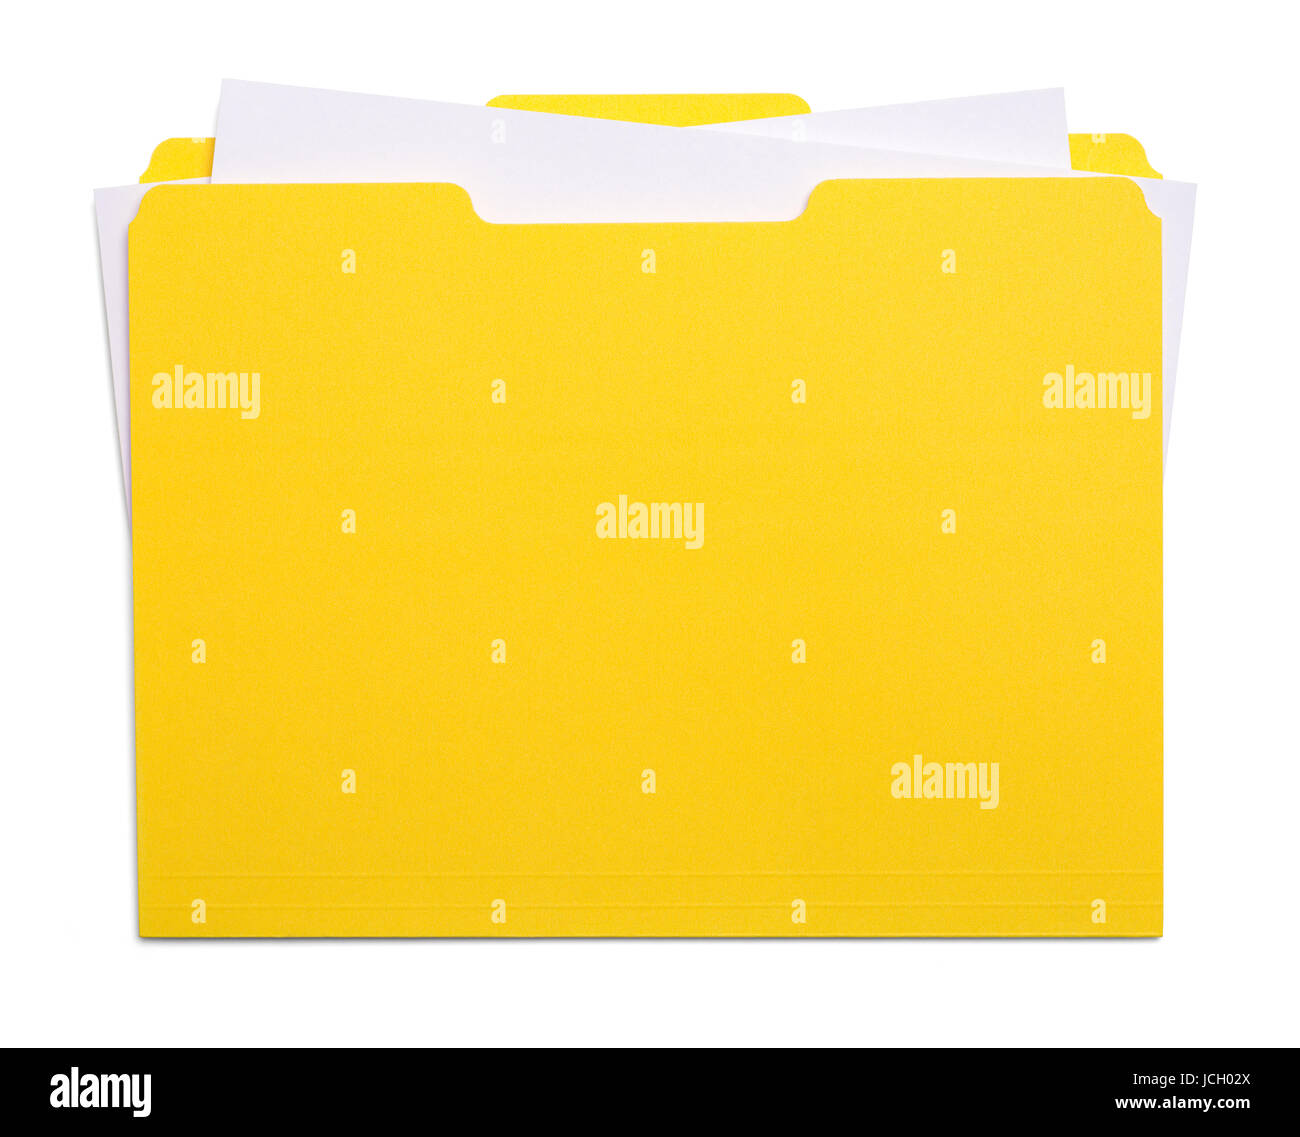 Yellow File Folder with Papers Isolated on White Background. - Stock Image